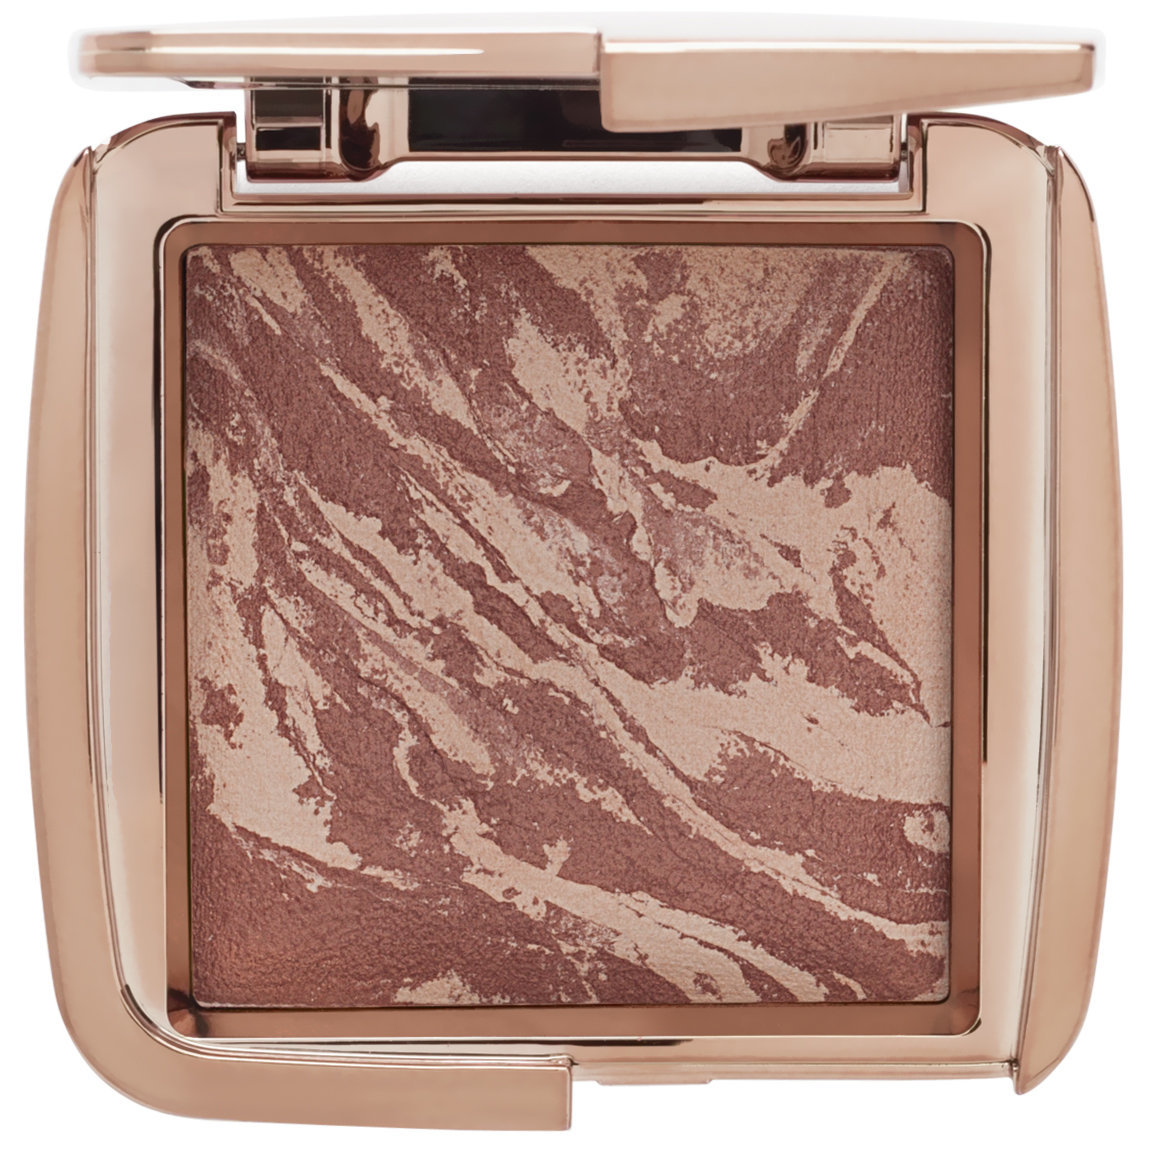 Hourglass Ambient Lighting Bronzer Diffused Bronze Light product swatch.